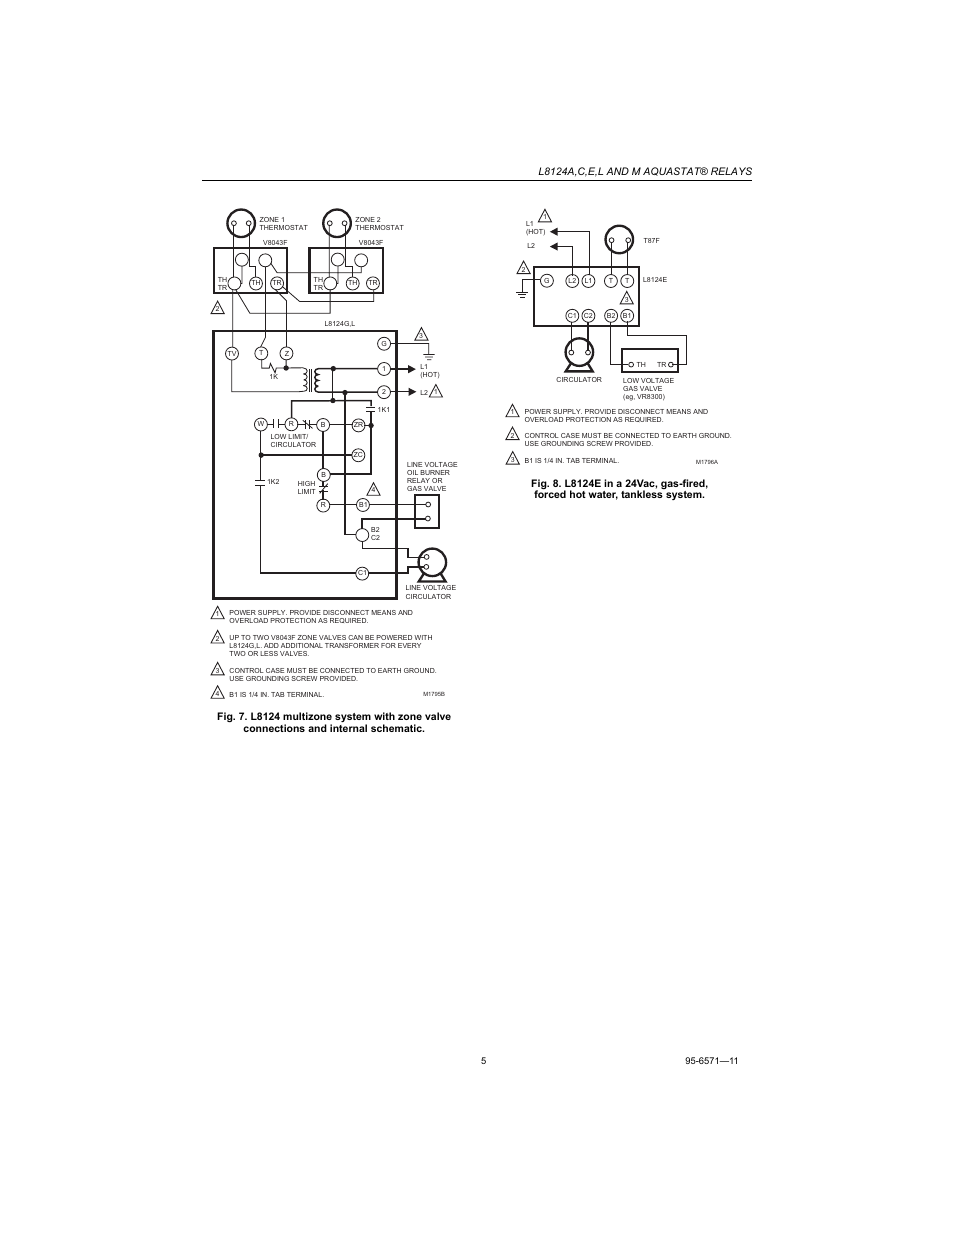 Honeywell Aquastat L8124c Manual L8124a Wiring Diagram L8124e User Page 5 8 Also For L8124m